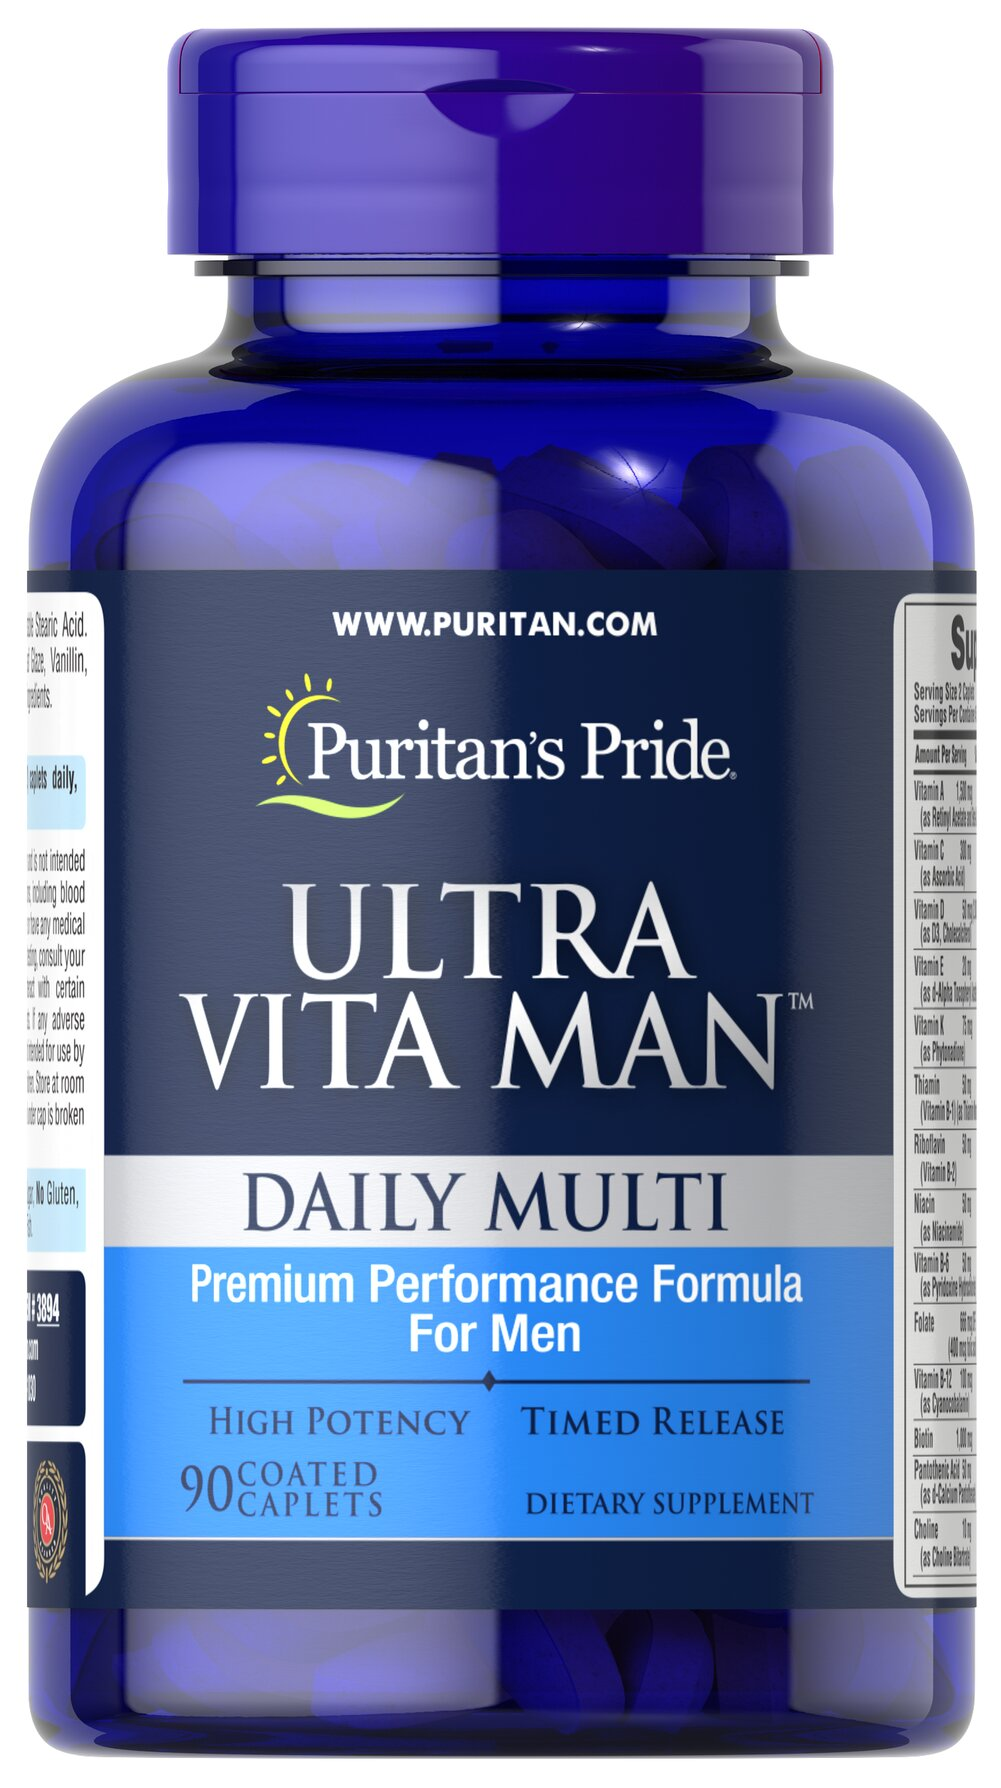 Ultra Vita Man™ Time Release <p>This time release multivitamins  delivers vitamins and minerals shown to be beneficial to men's overall wellness. From antioxidant and immune support to cardiovascular health, Ultra Vita Man is ideal for today's on-the-go men!**</p> 90 Caplets  $22.99